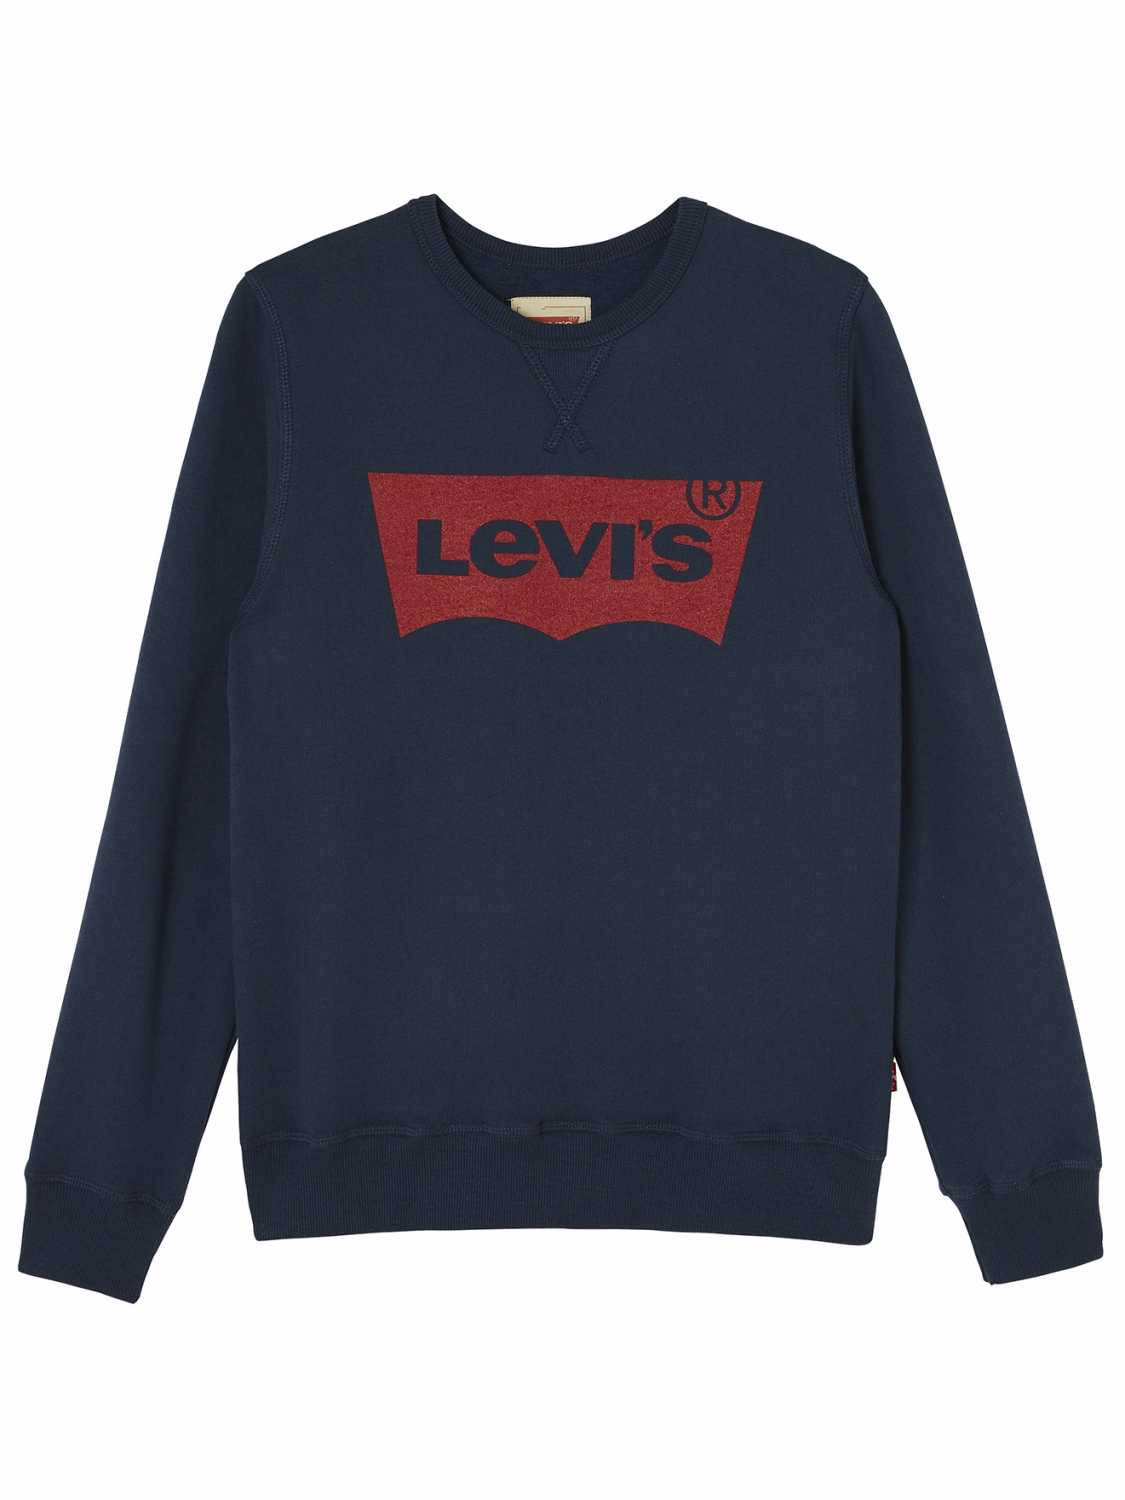 Levis Sweater